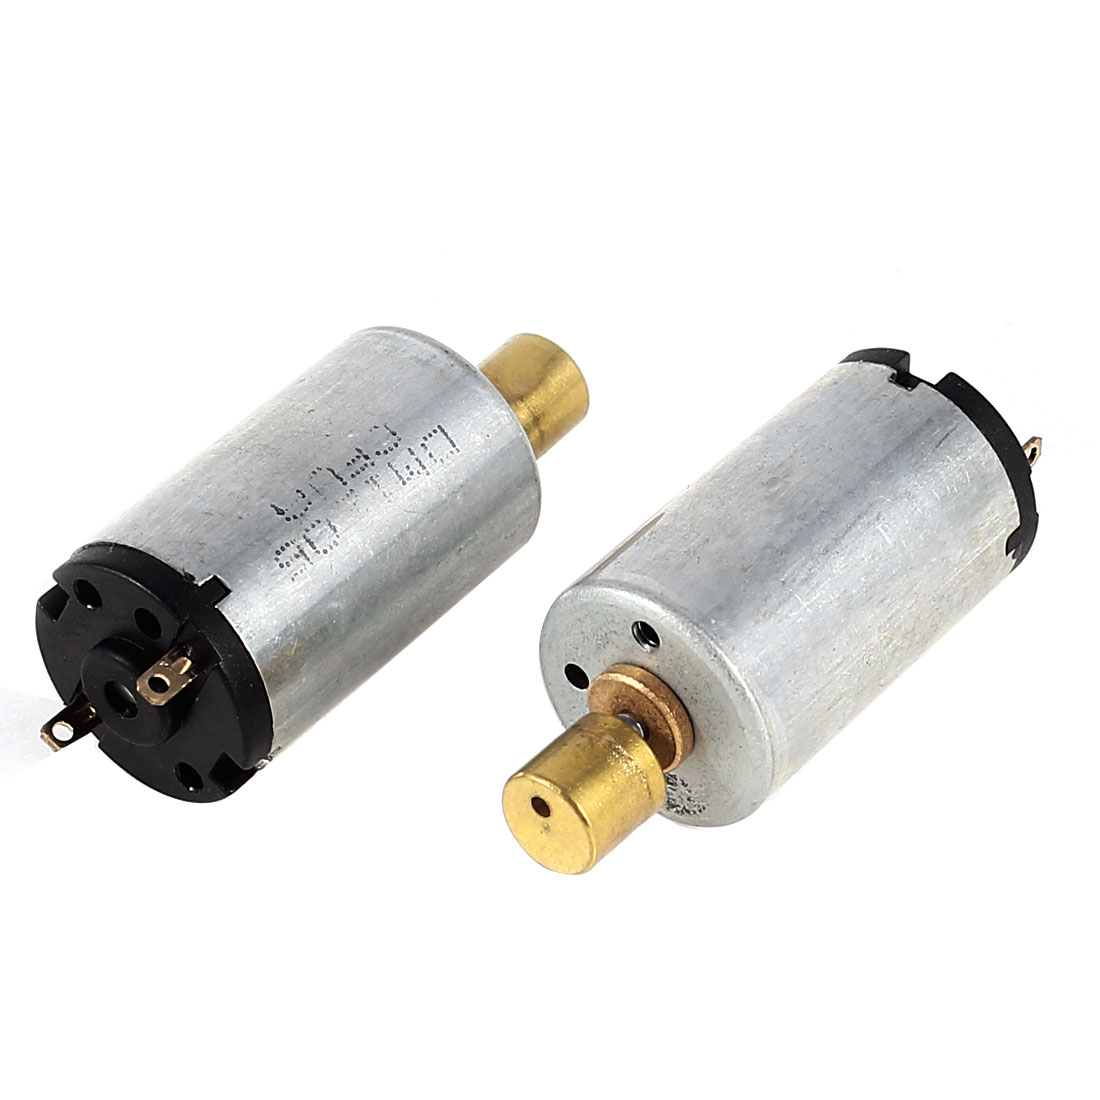 2-x-Mini-Vibration-Vibrating-Motor-DC-1-25-3-7V-14000RPM-12x20mm-for-Toys